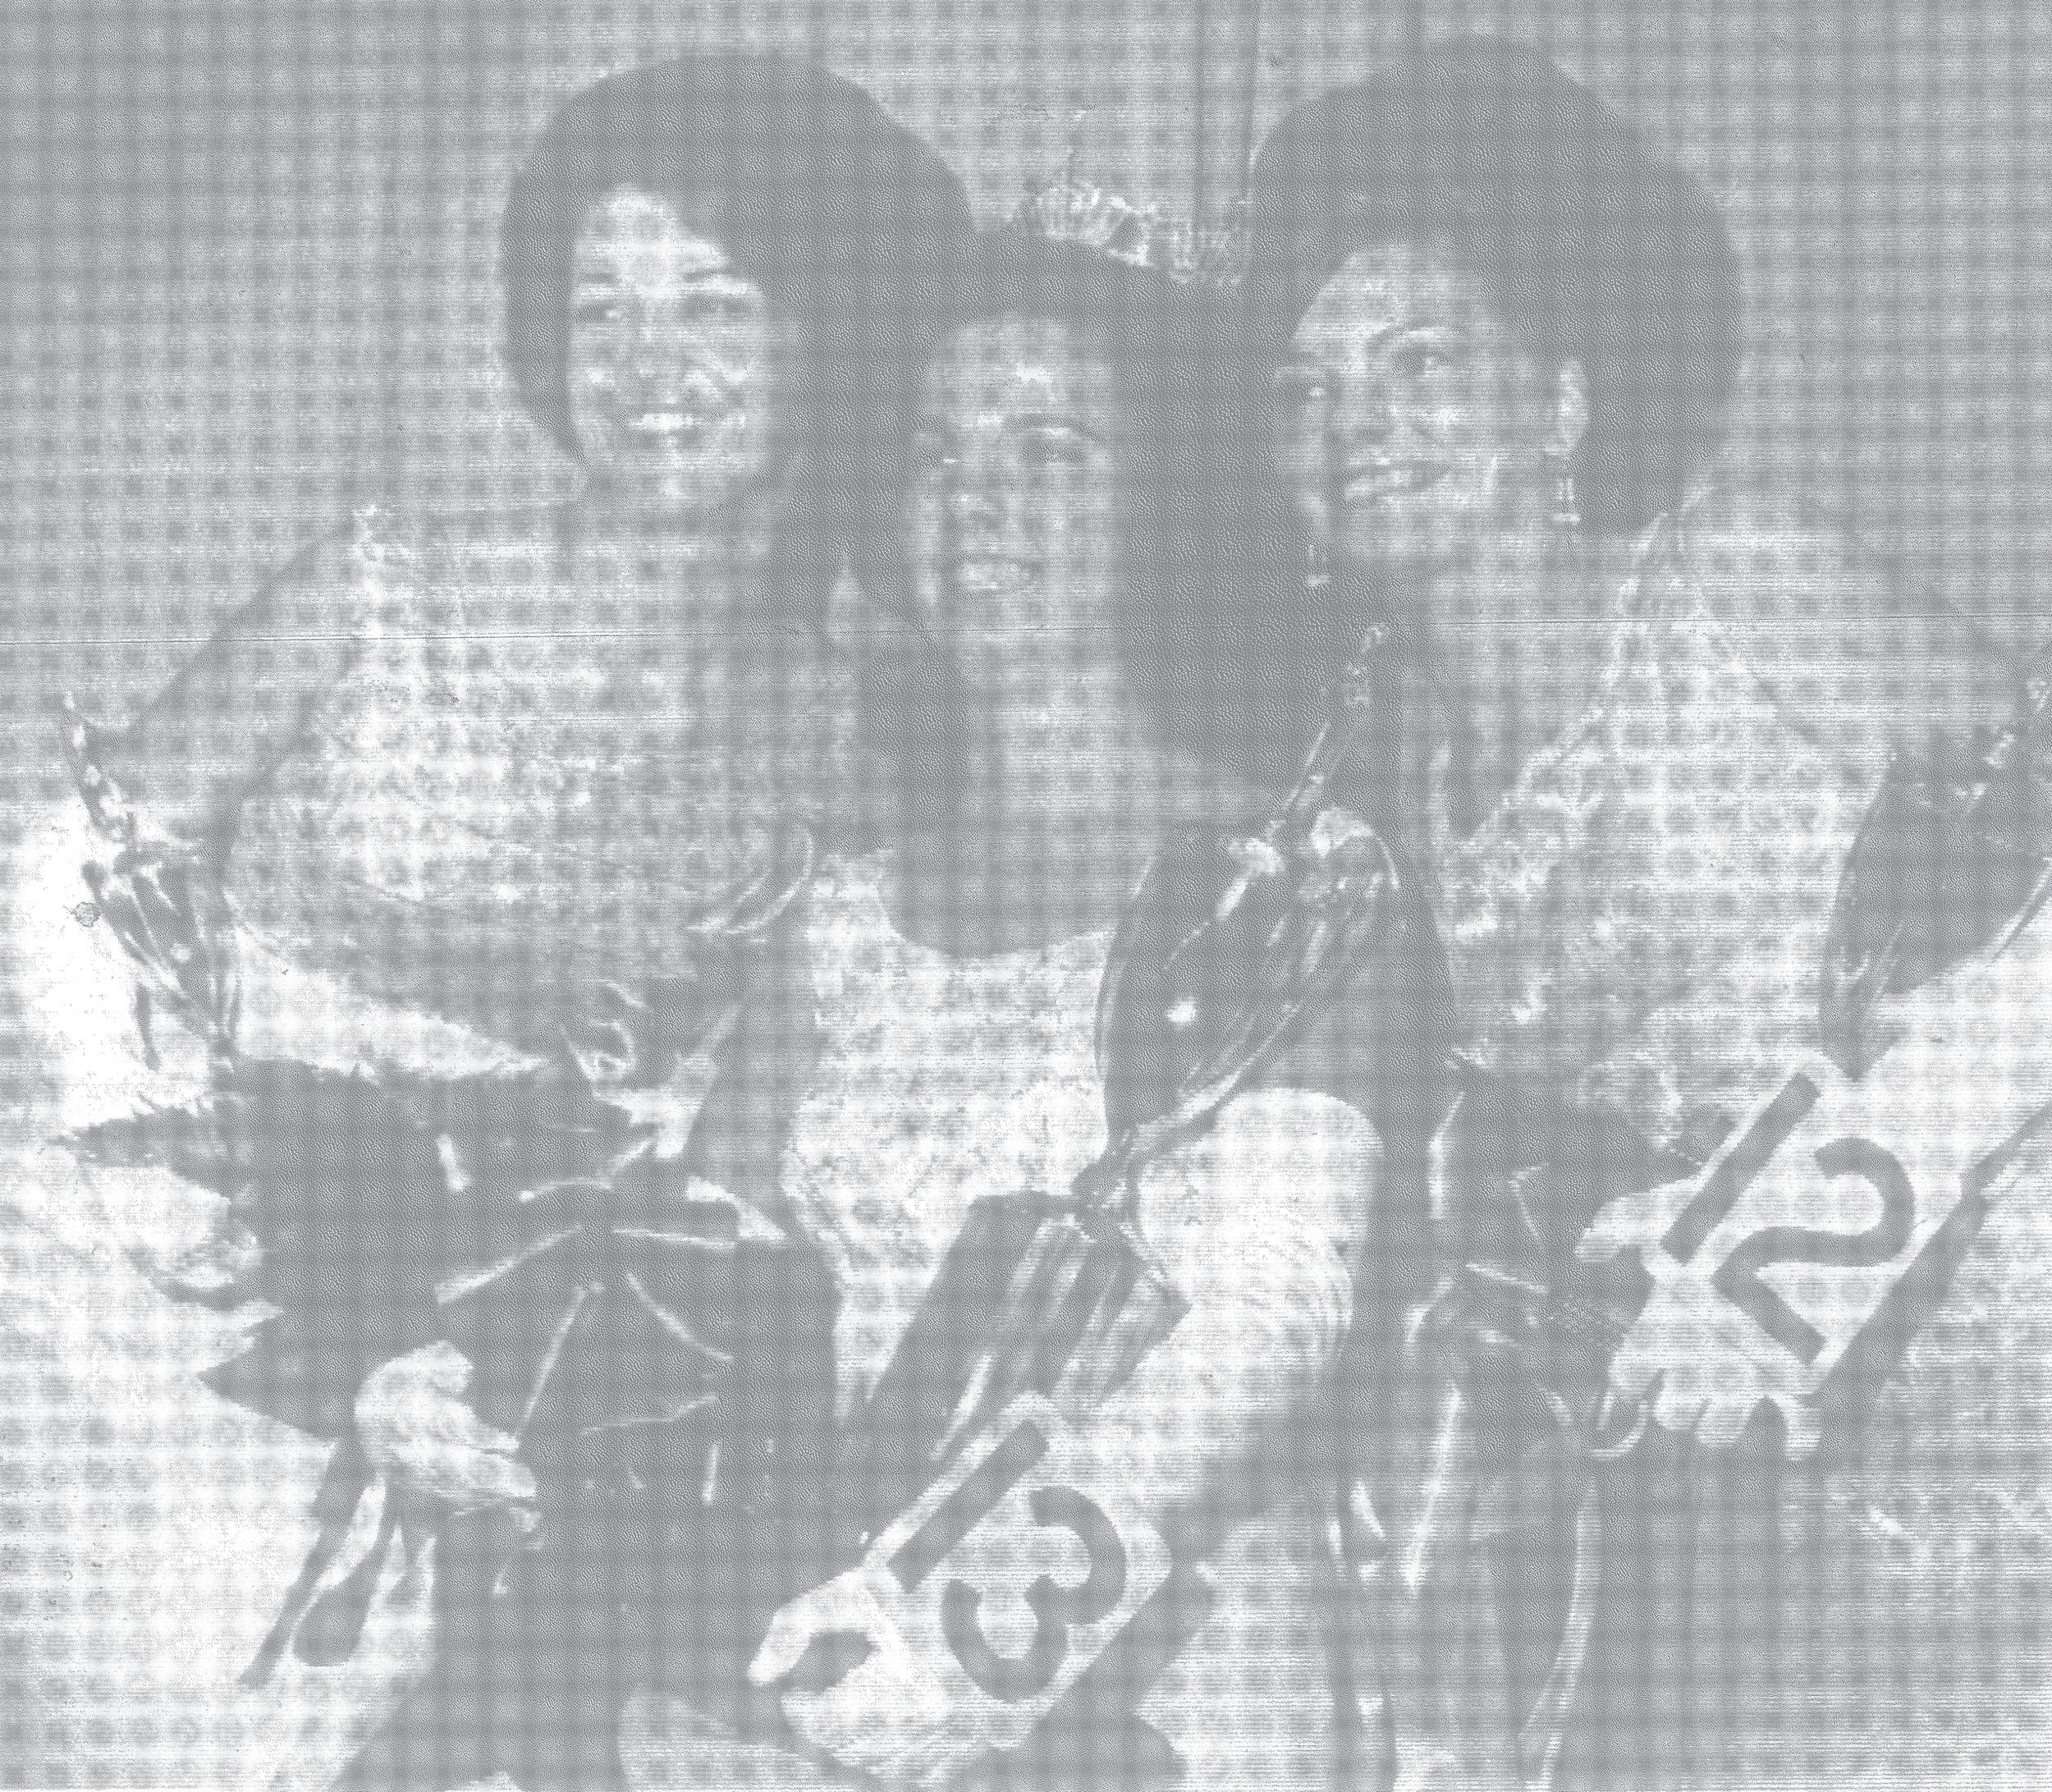 1968 - Miss Julie Helen Dean, 17, center, Miss Sumter of 1969, is flanked by the first runner-up, Stella Louise McLeod, and Kathy Jean Benbow, left, second runner-up.